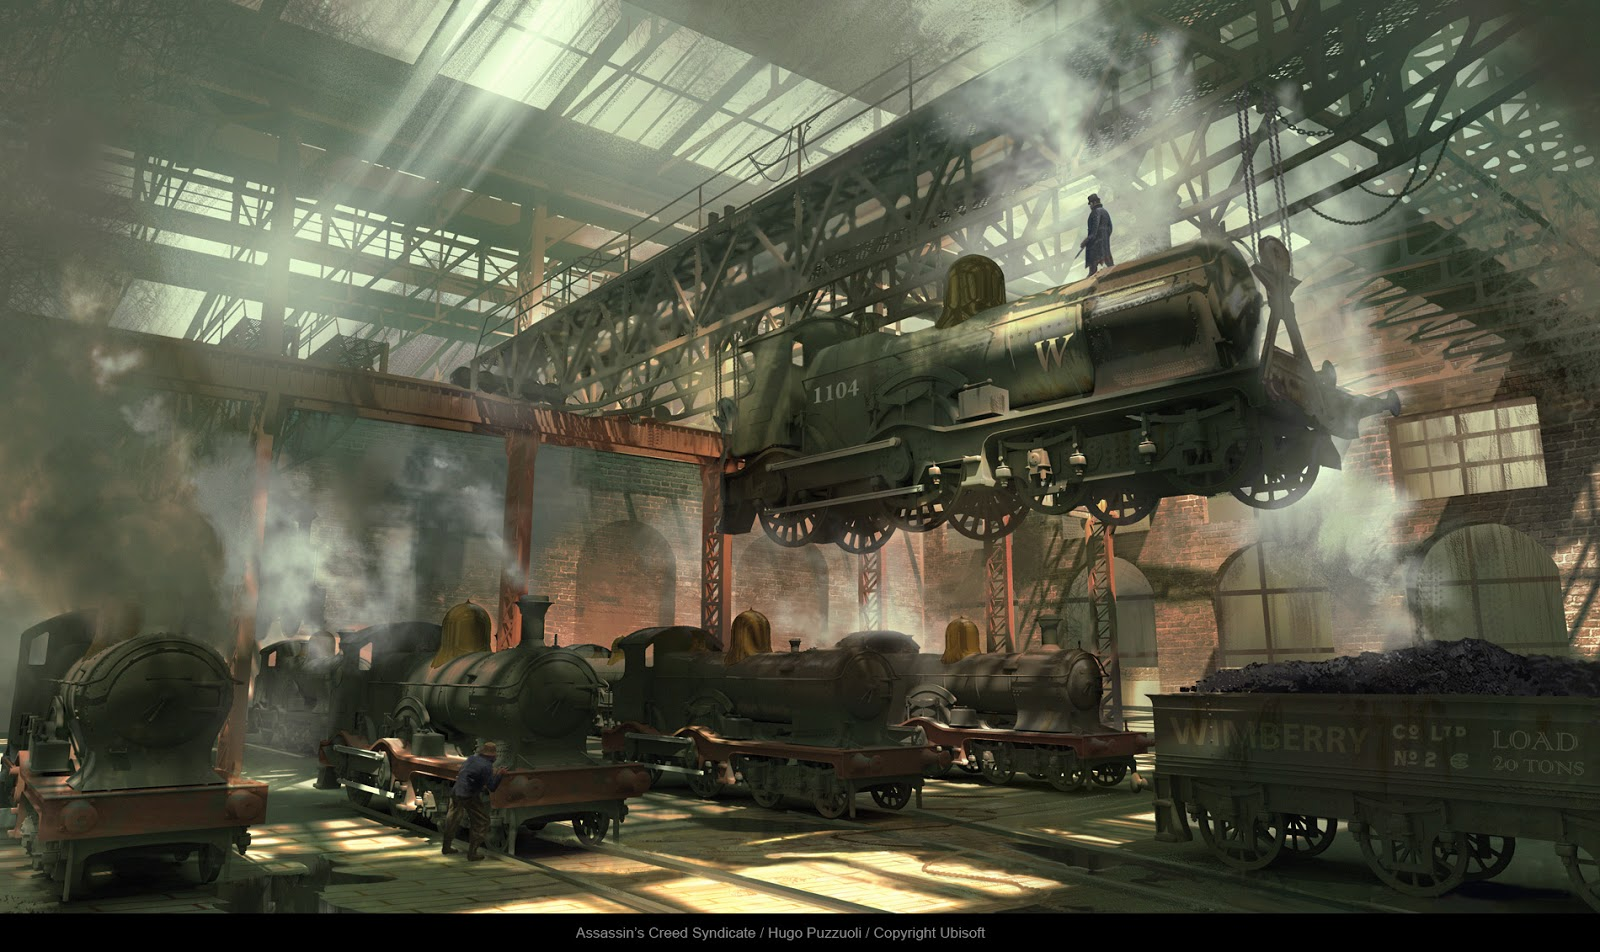 Hugo Puzzuoli Assassin s Creed syndicate Concept art